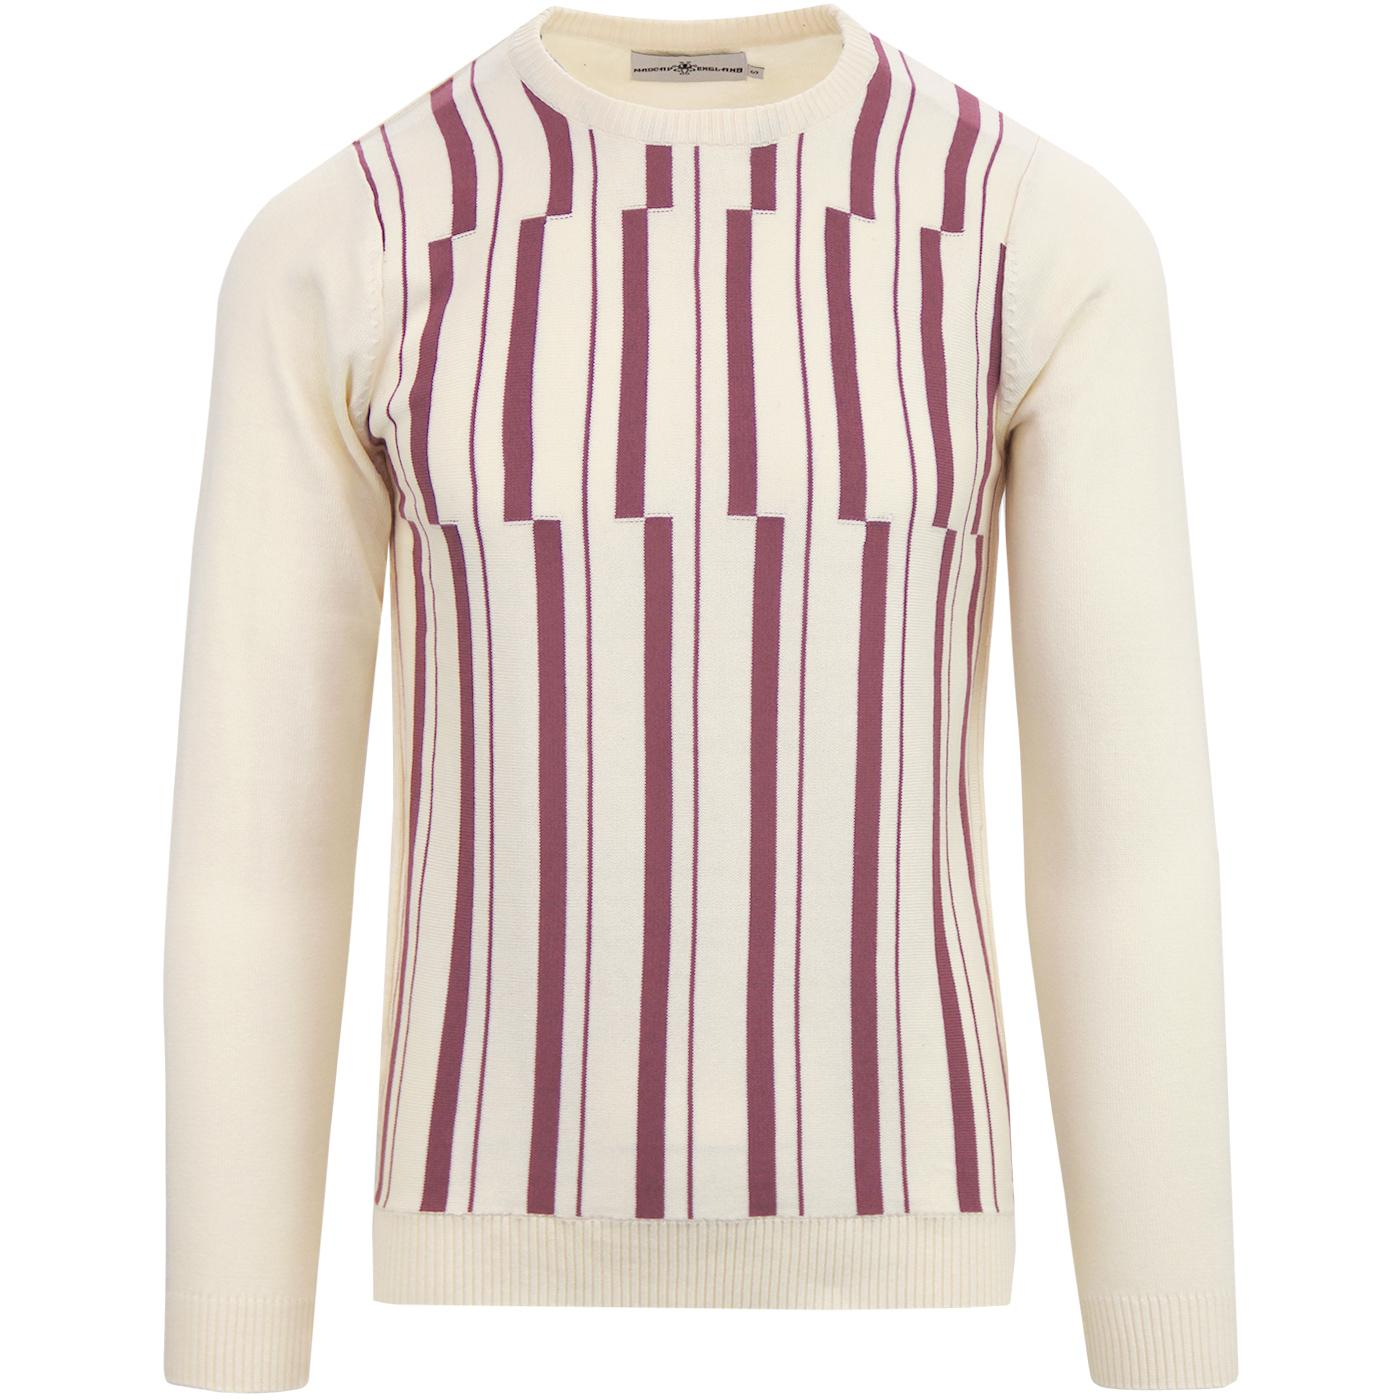 Amadeus MADCAP ENGLAND Abstract Stripe Knit Jumper